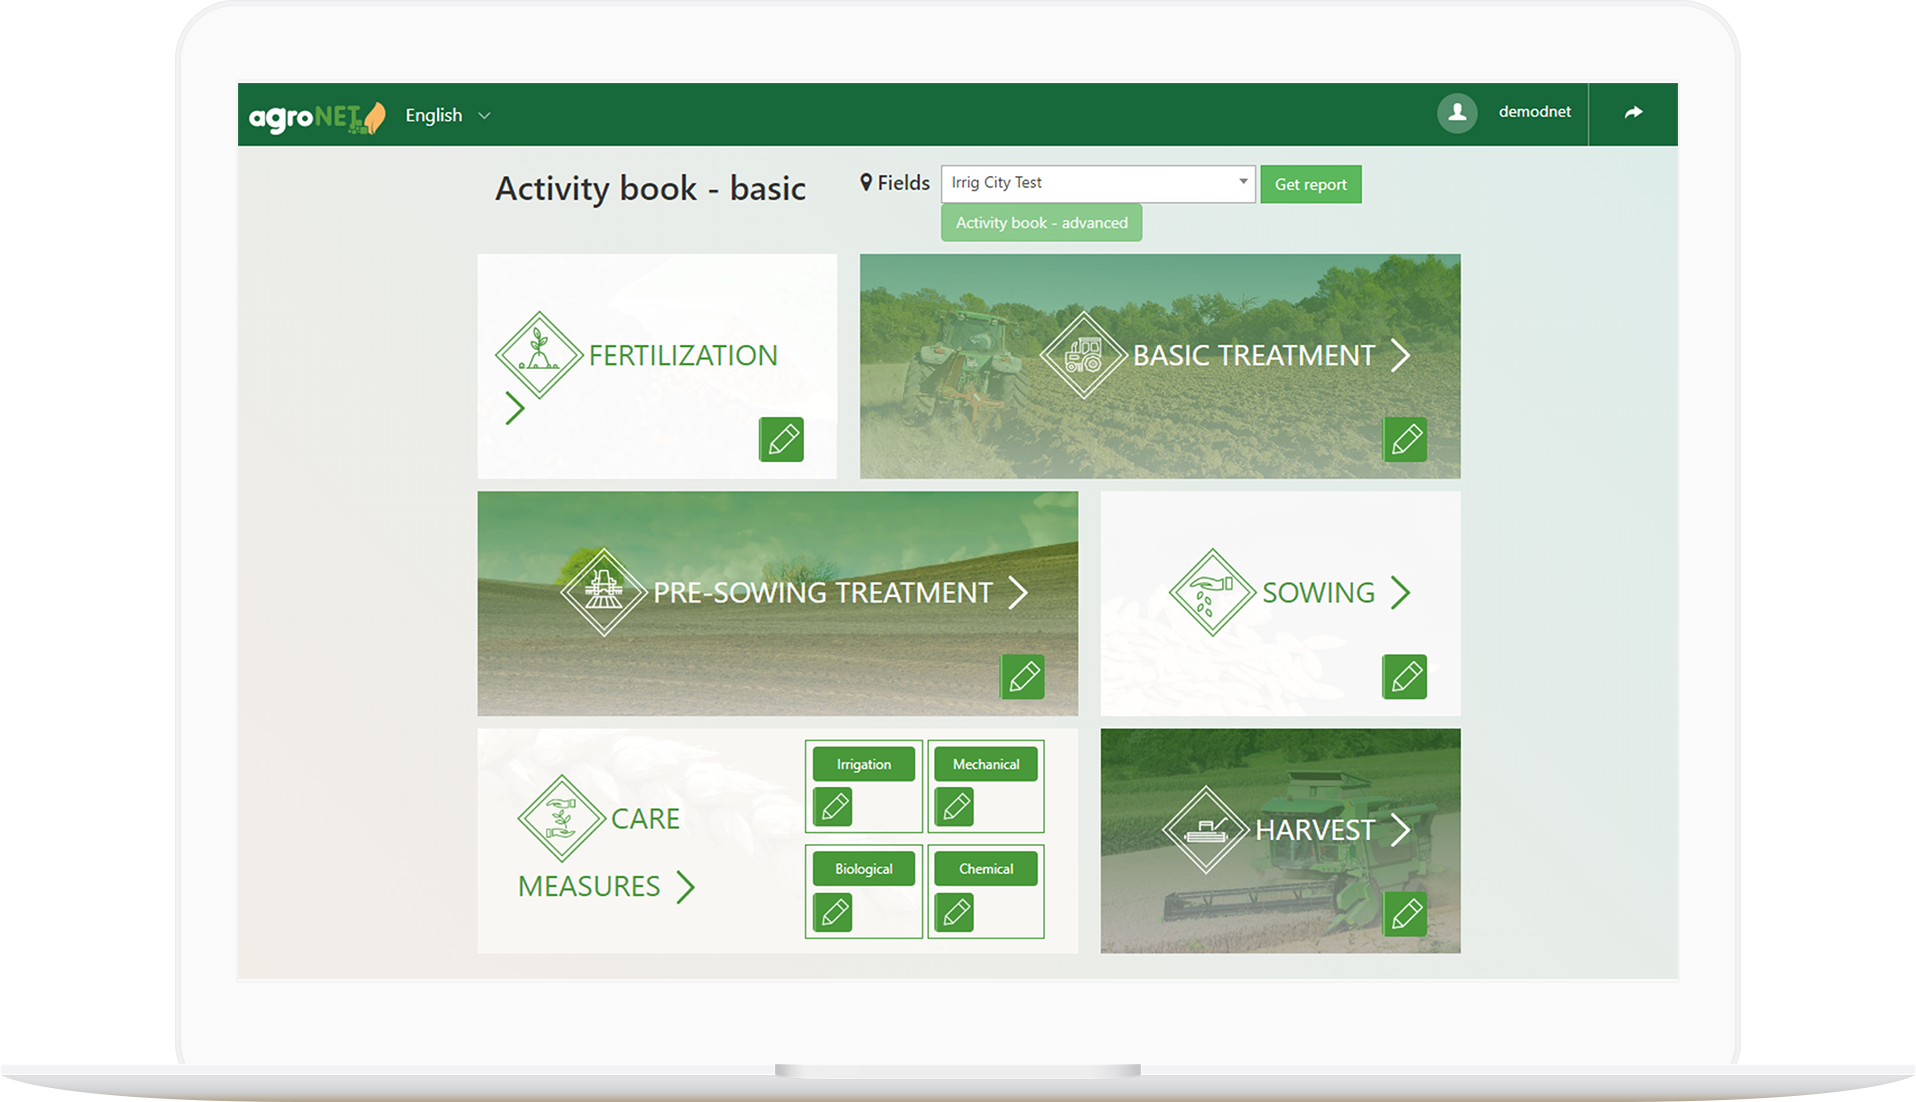 agroNET - Activity book